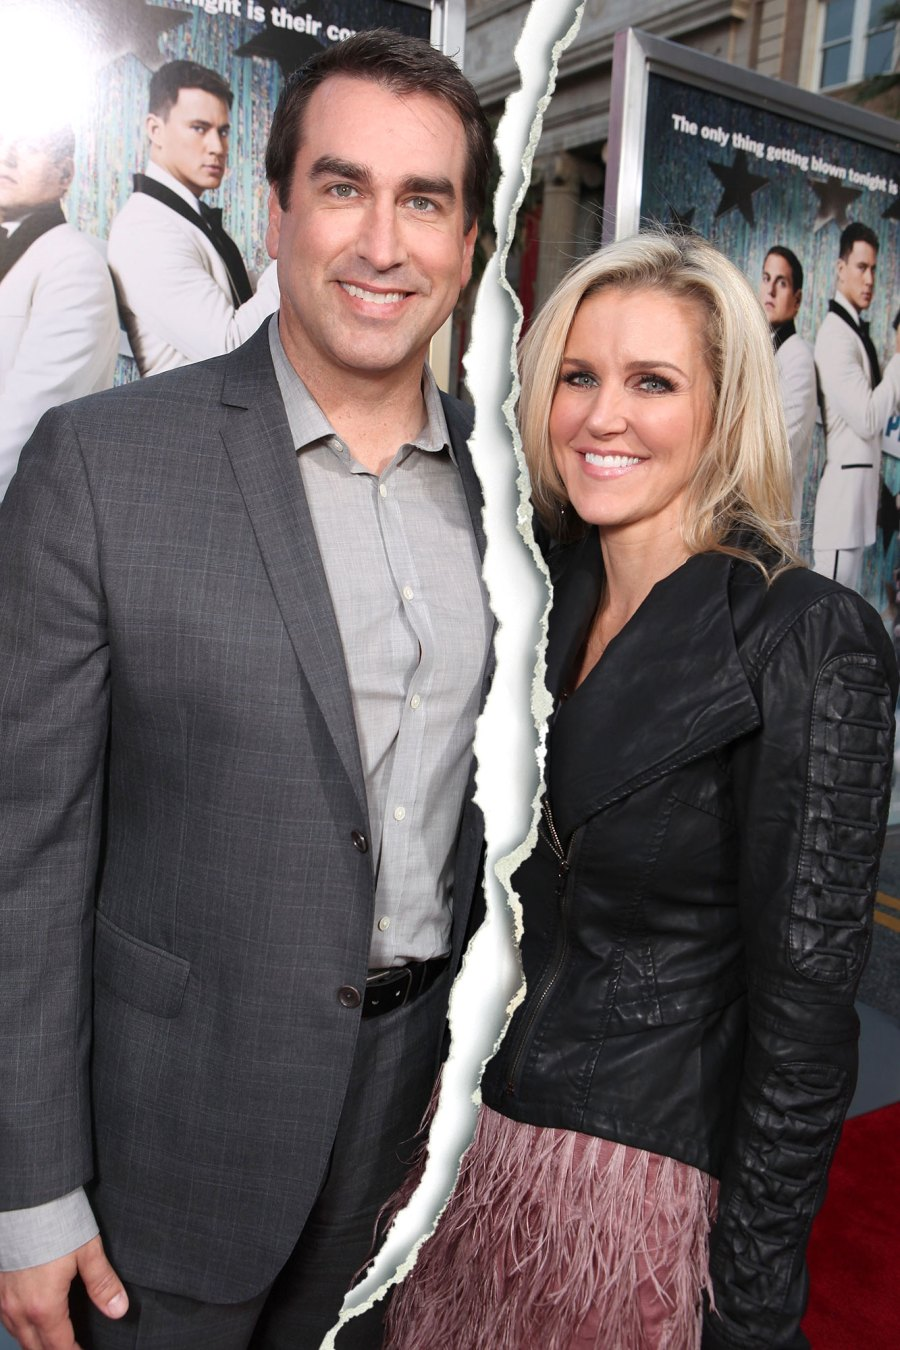 Rob Riggle and Tiffany Riggle Split